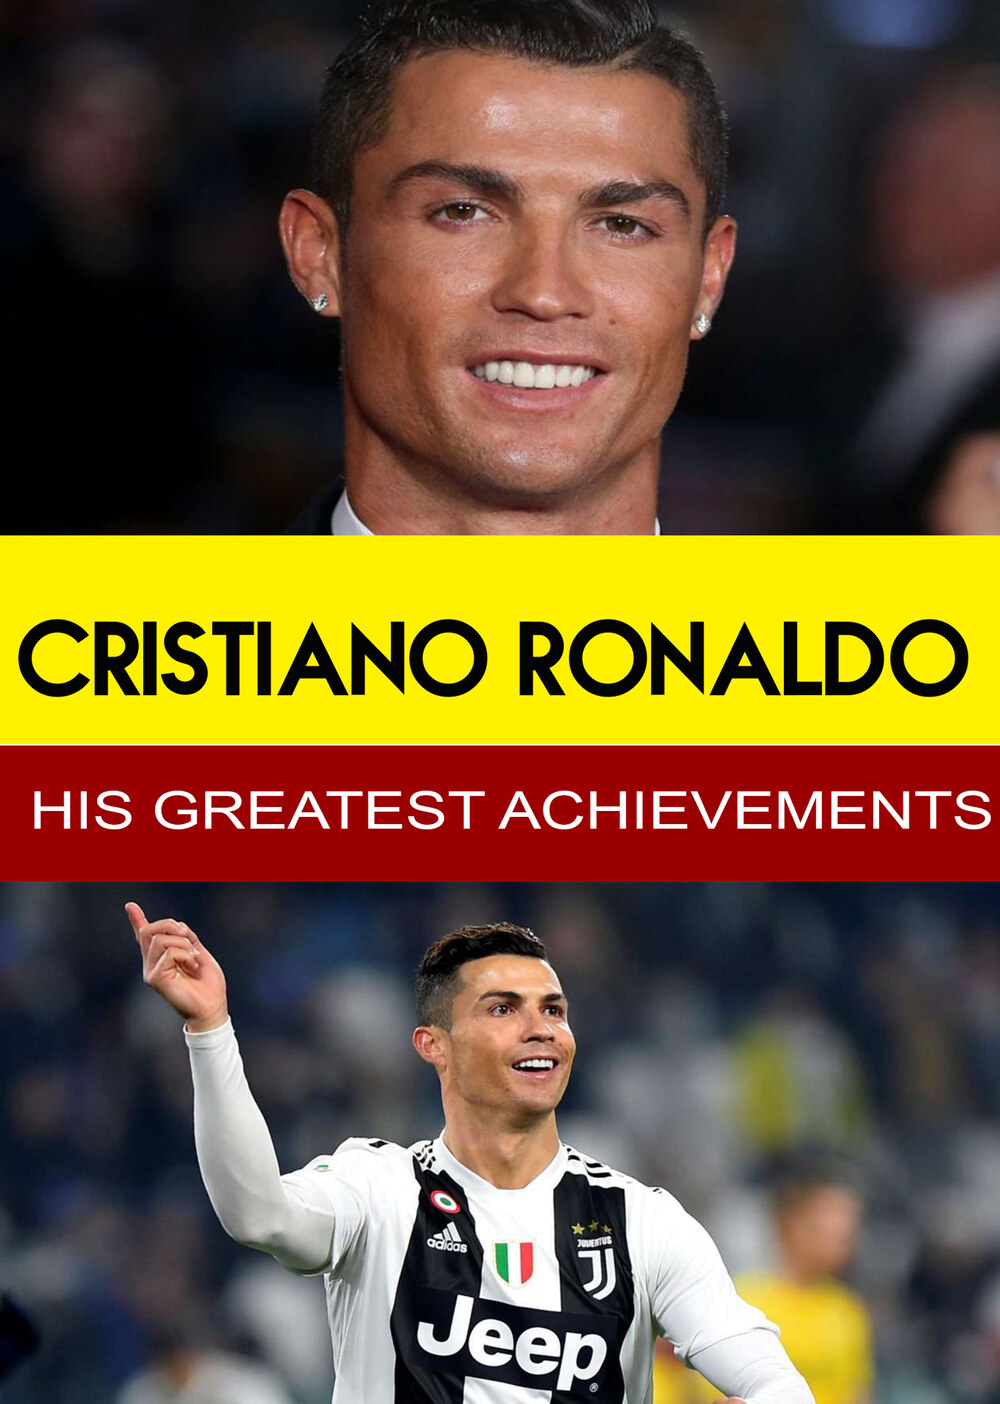 L7859 - Cristiano Ronaldo - His Greatest Achievements